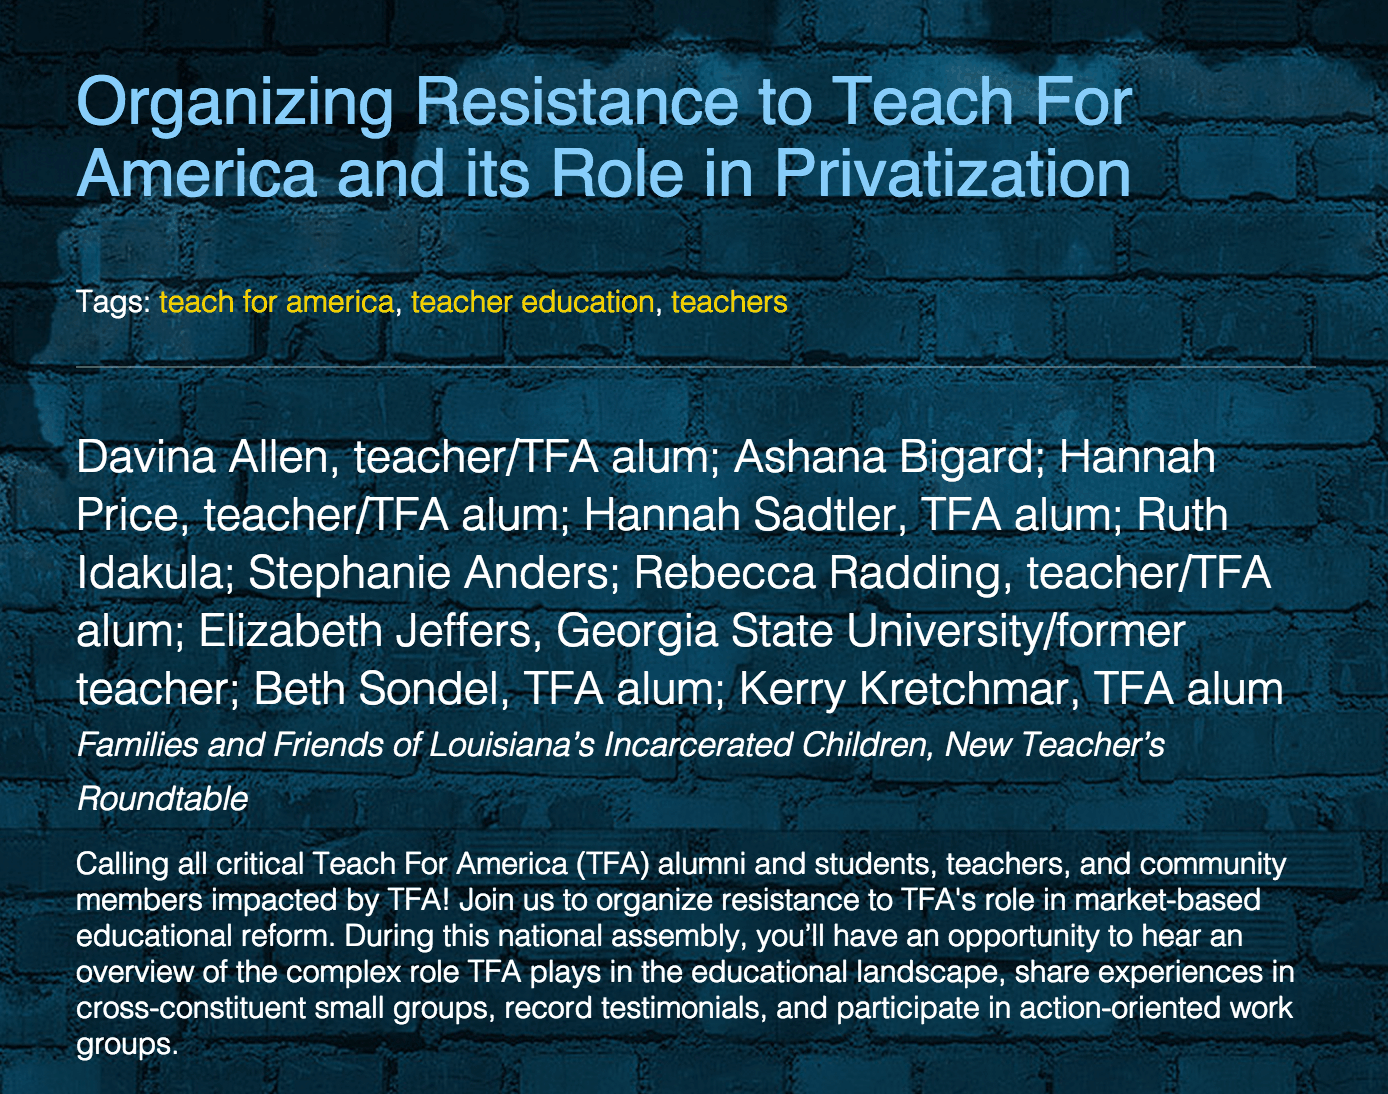 Davina Allen, who has been involved in anti-TFA organizing, is hardly representative of the city's Teach For America corps members and alumni.